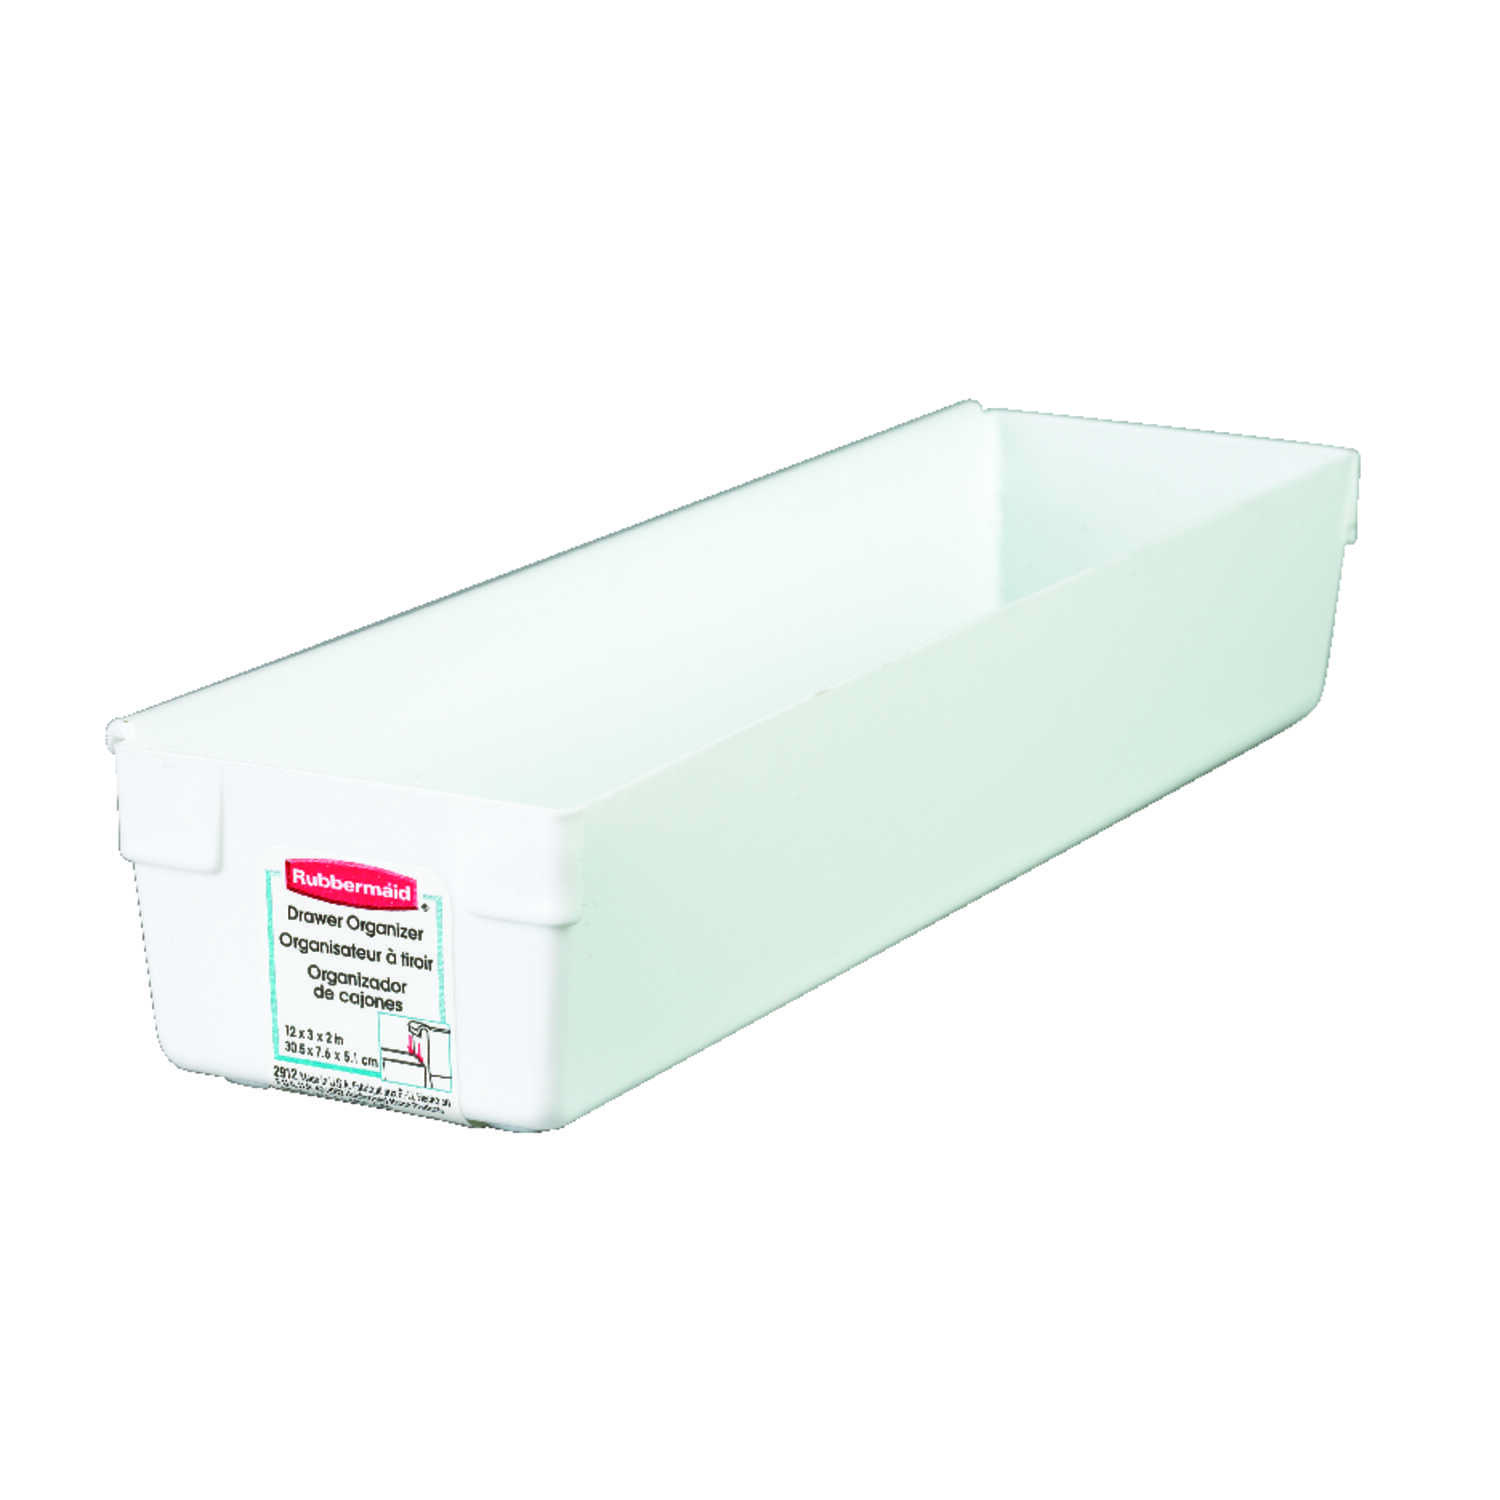 Rubbermaid  2 in. H x 3 in. W x 12 in. L White  Plastic  Drawer Organizer